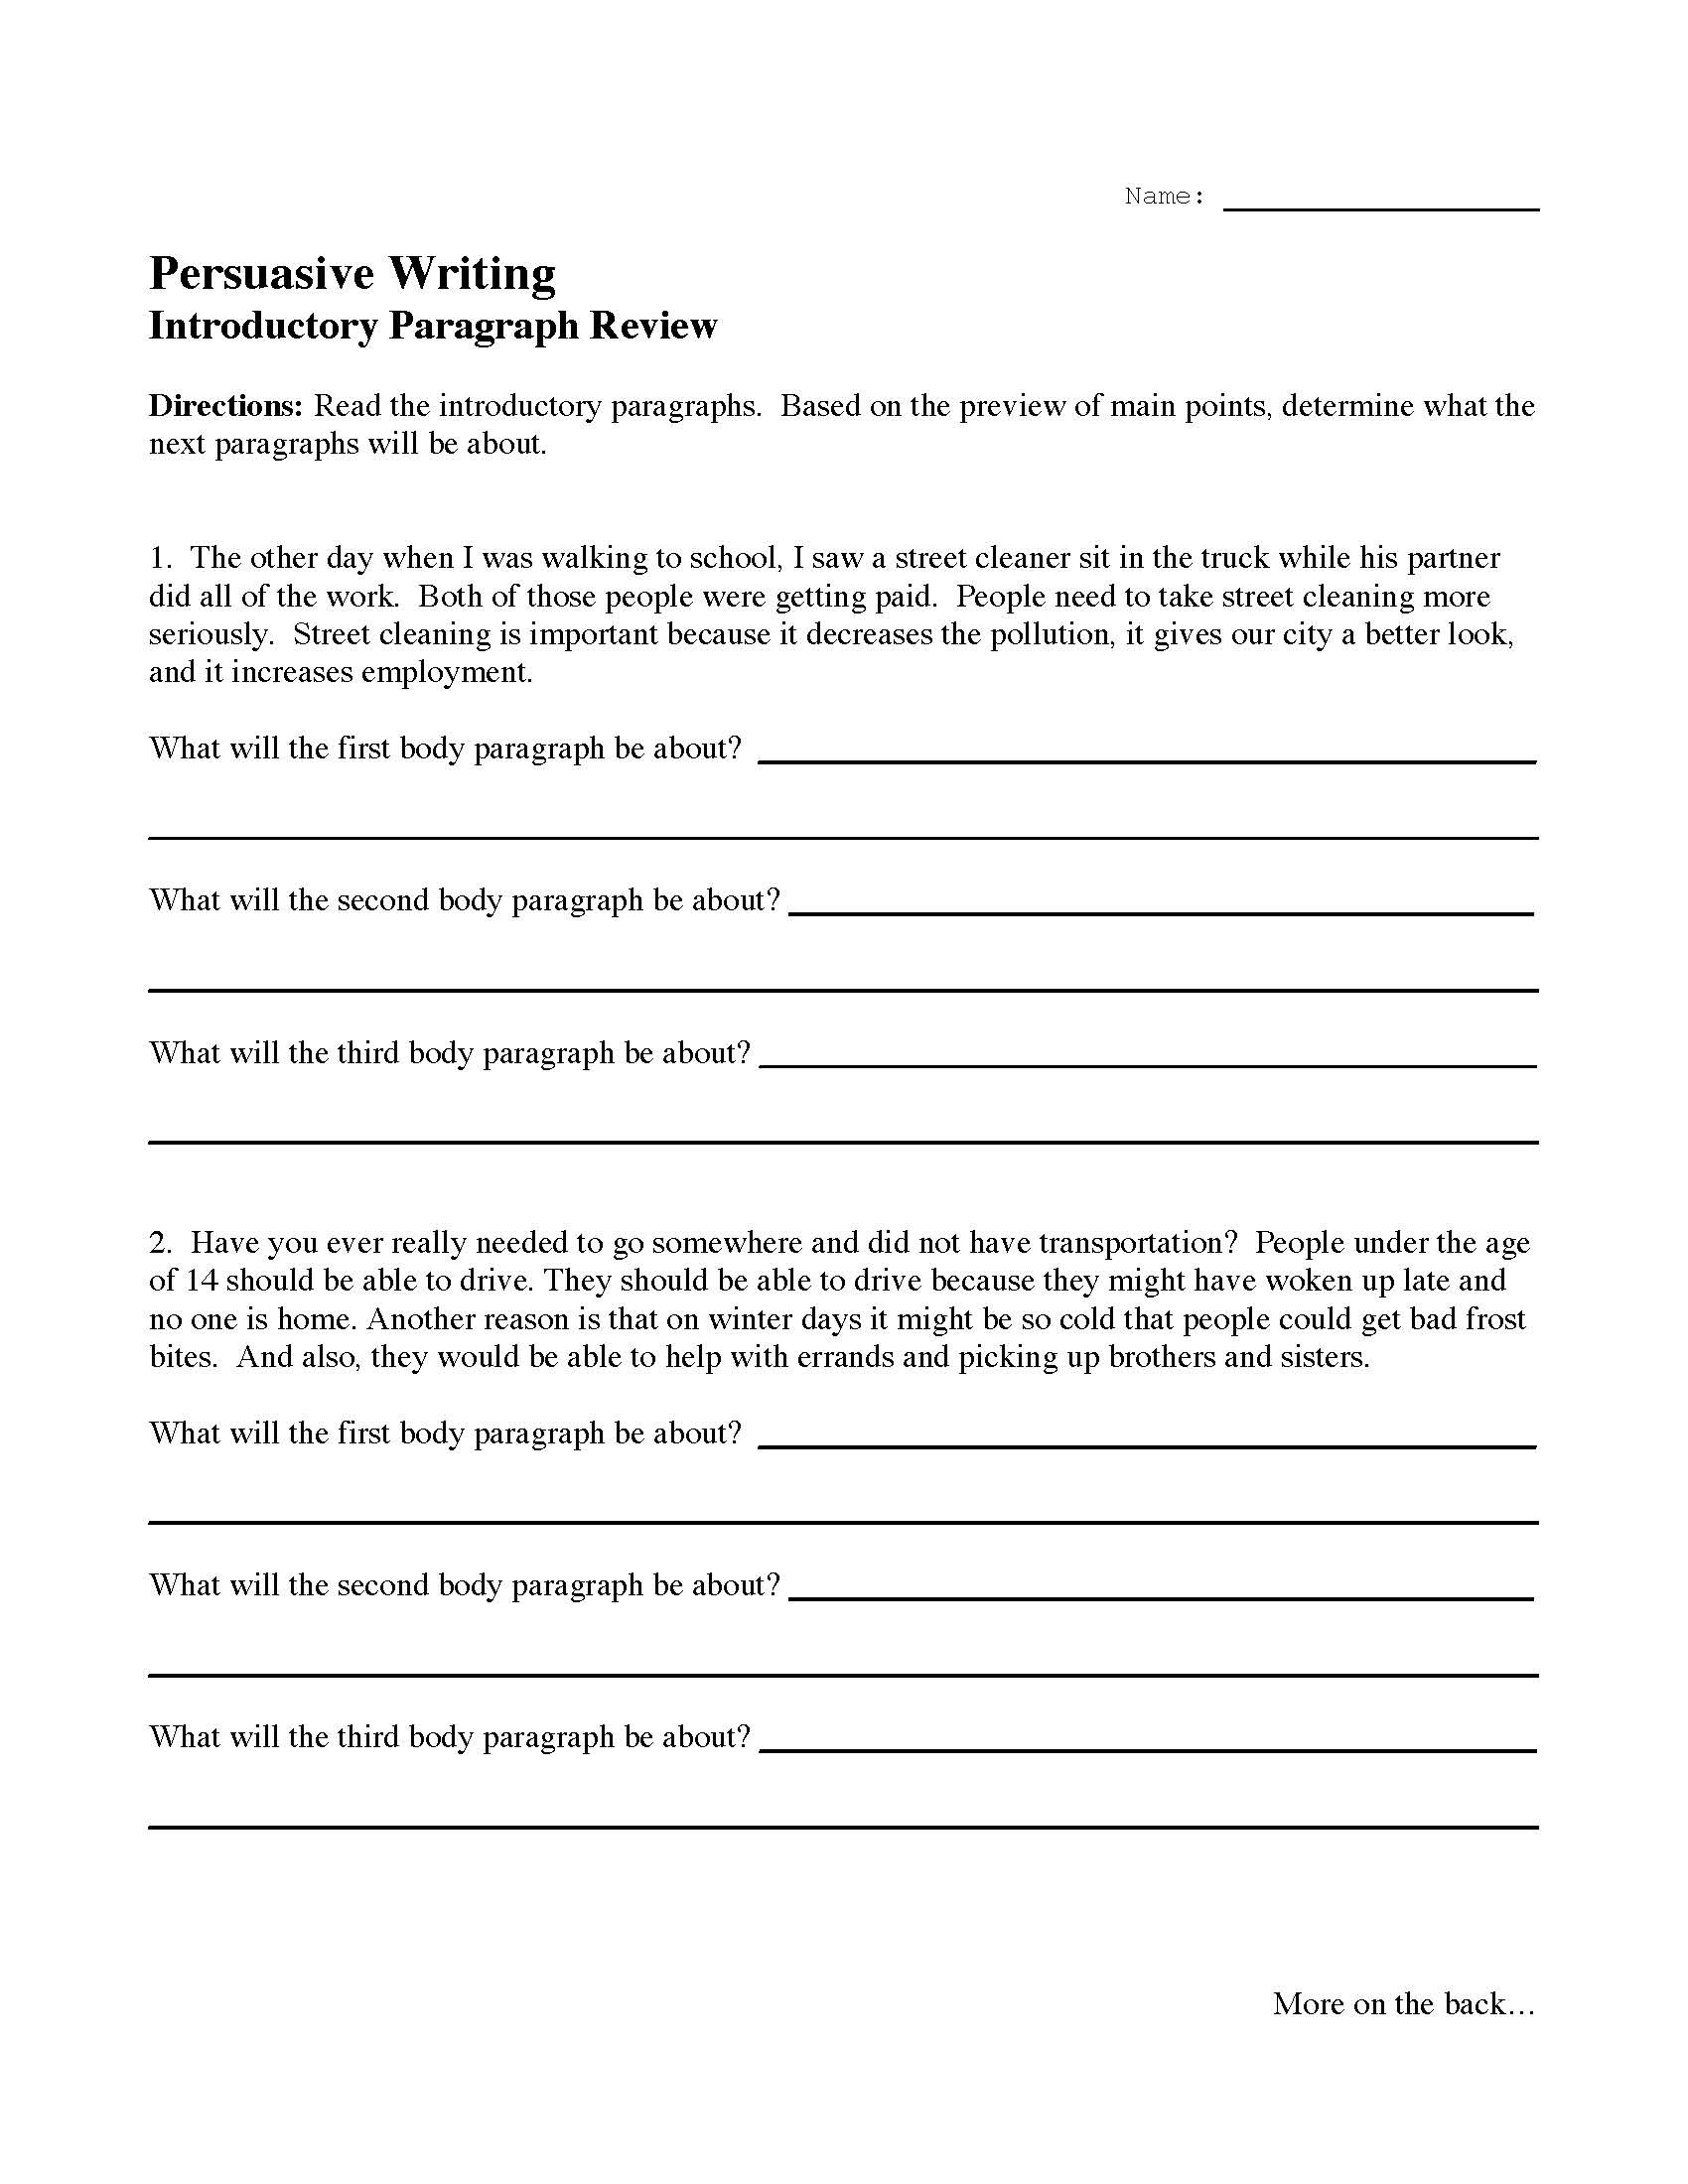 Writing A Paragraph Worksheet Introductory Paragraph Review Activity